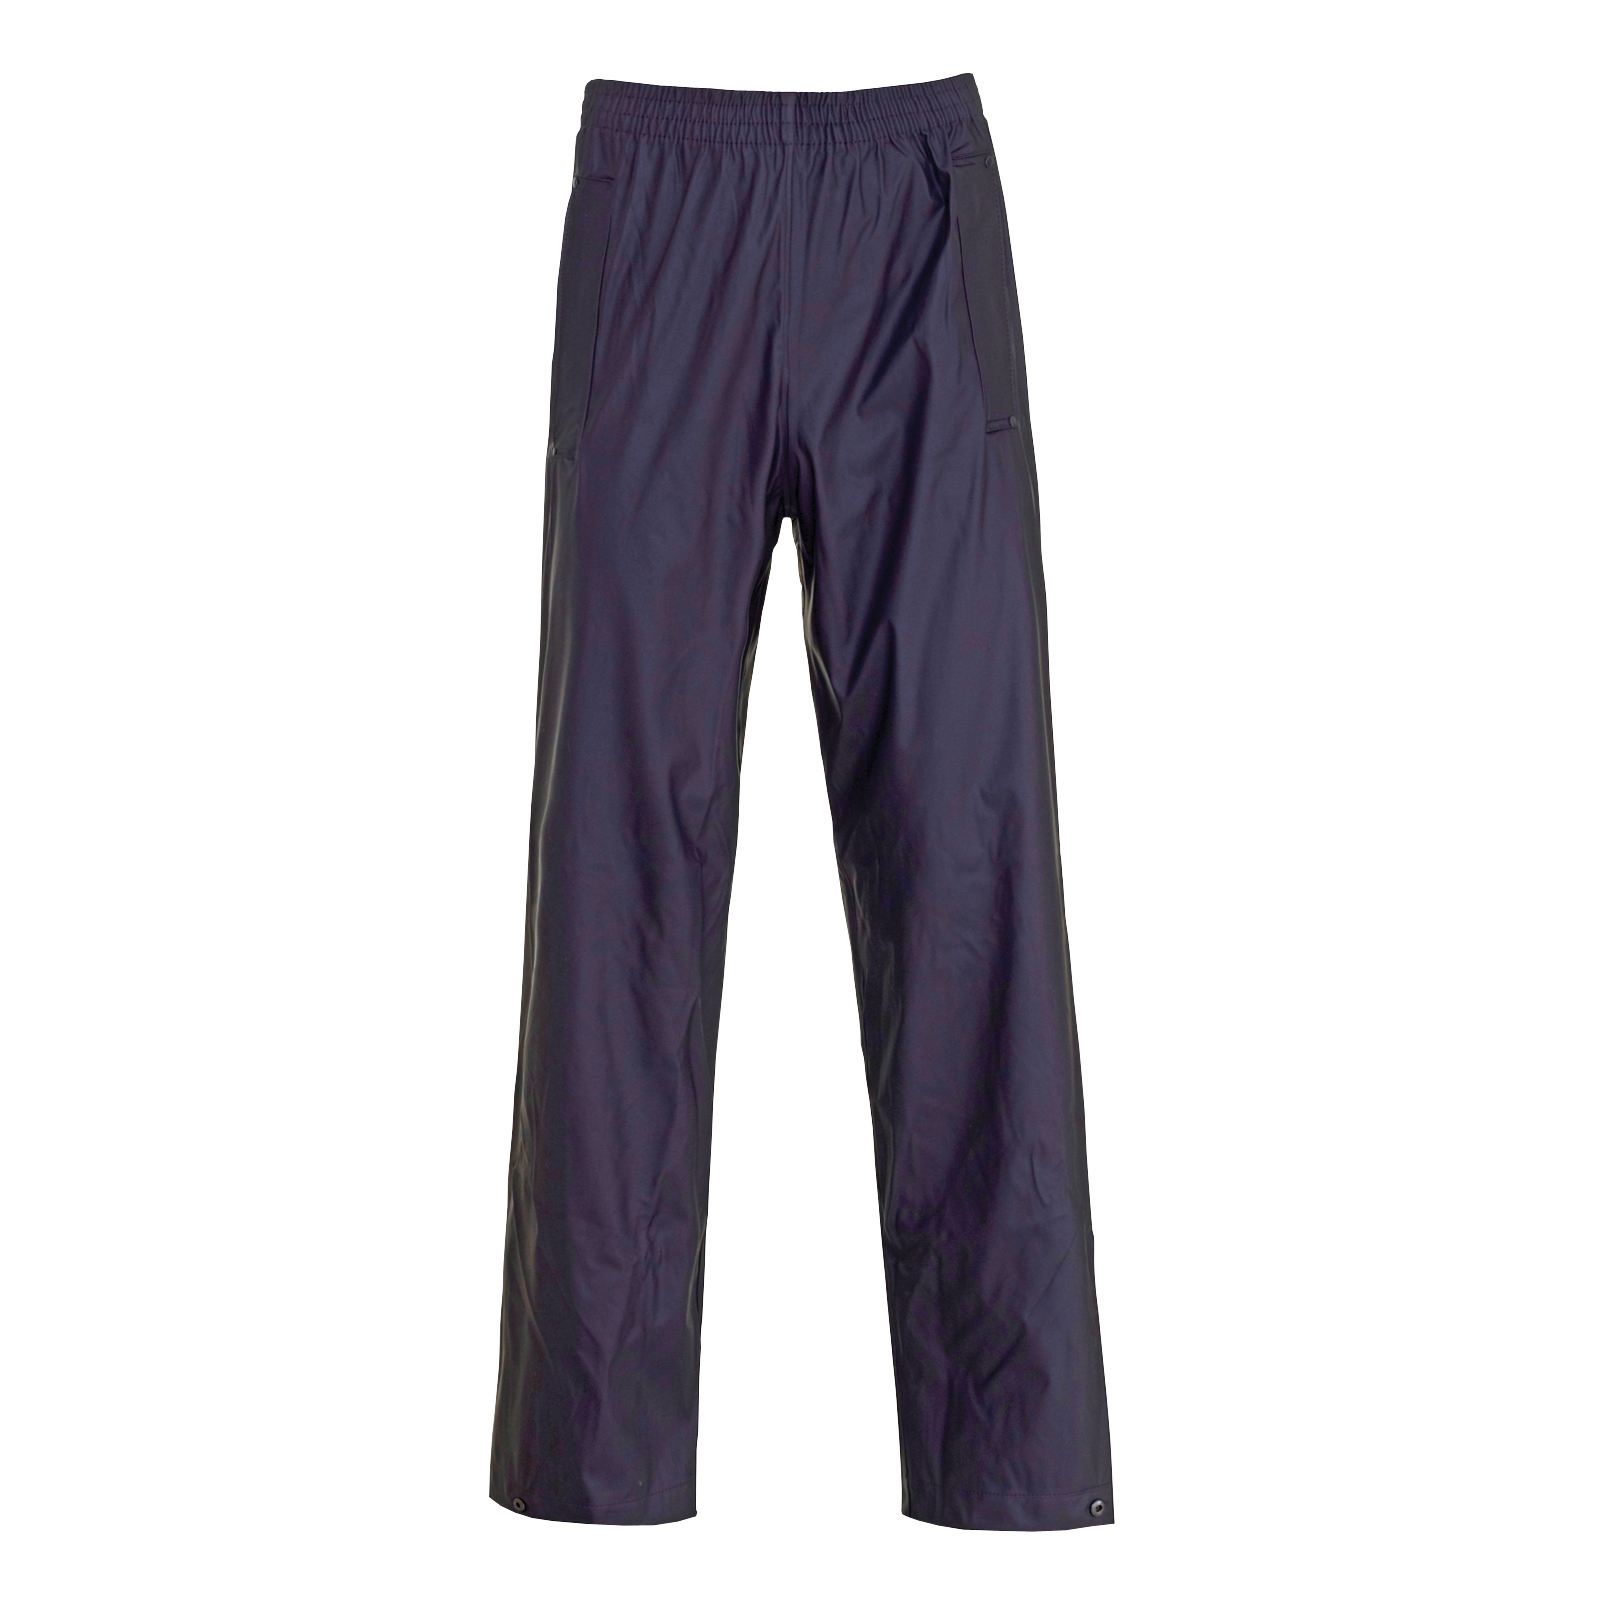 Weatherproof B-Dri Weatherproof Super Trousers Large Navy Blue Ref SBDTNL *Approx 3 Day Leadtime*